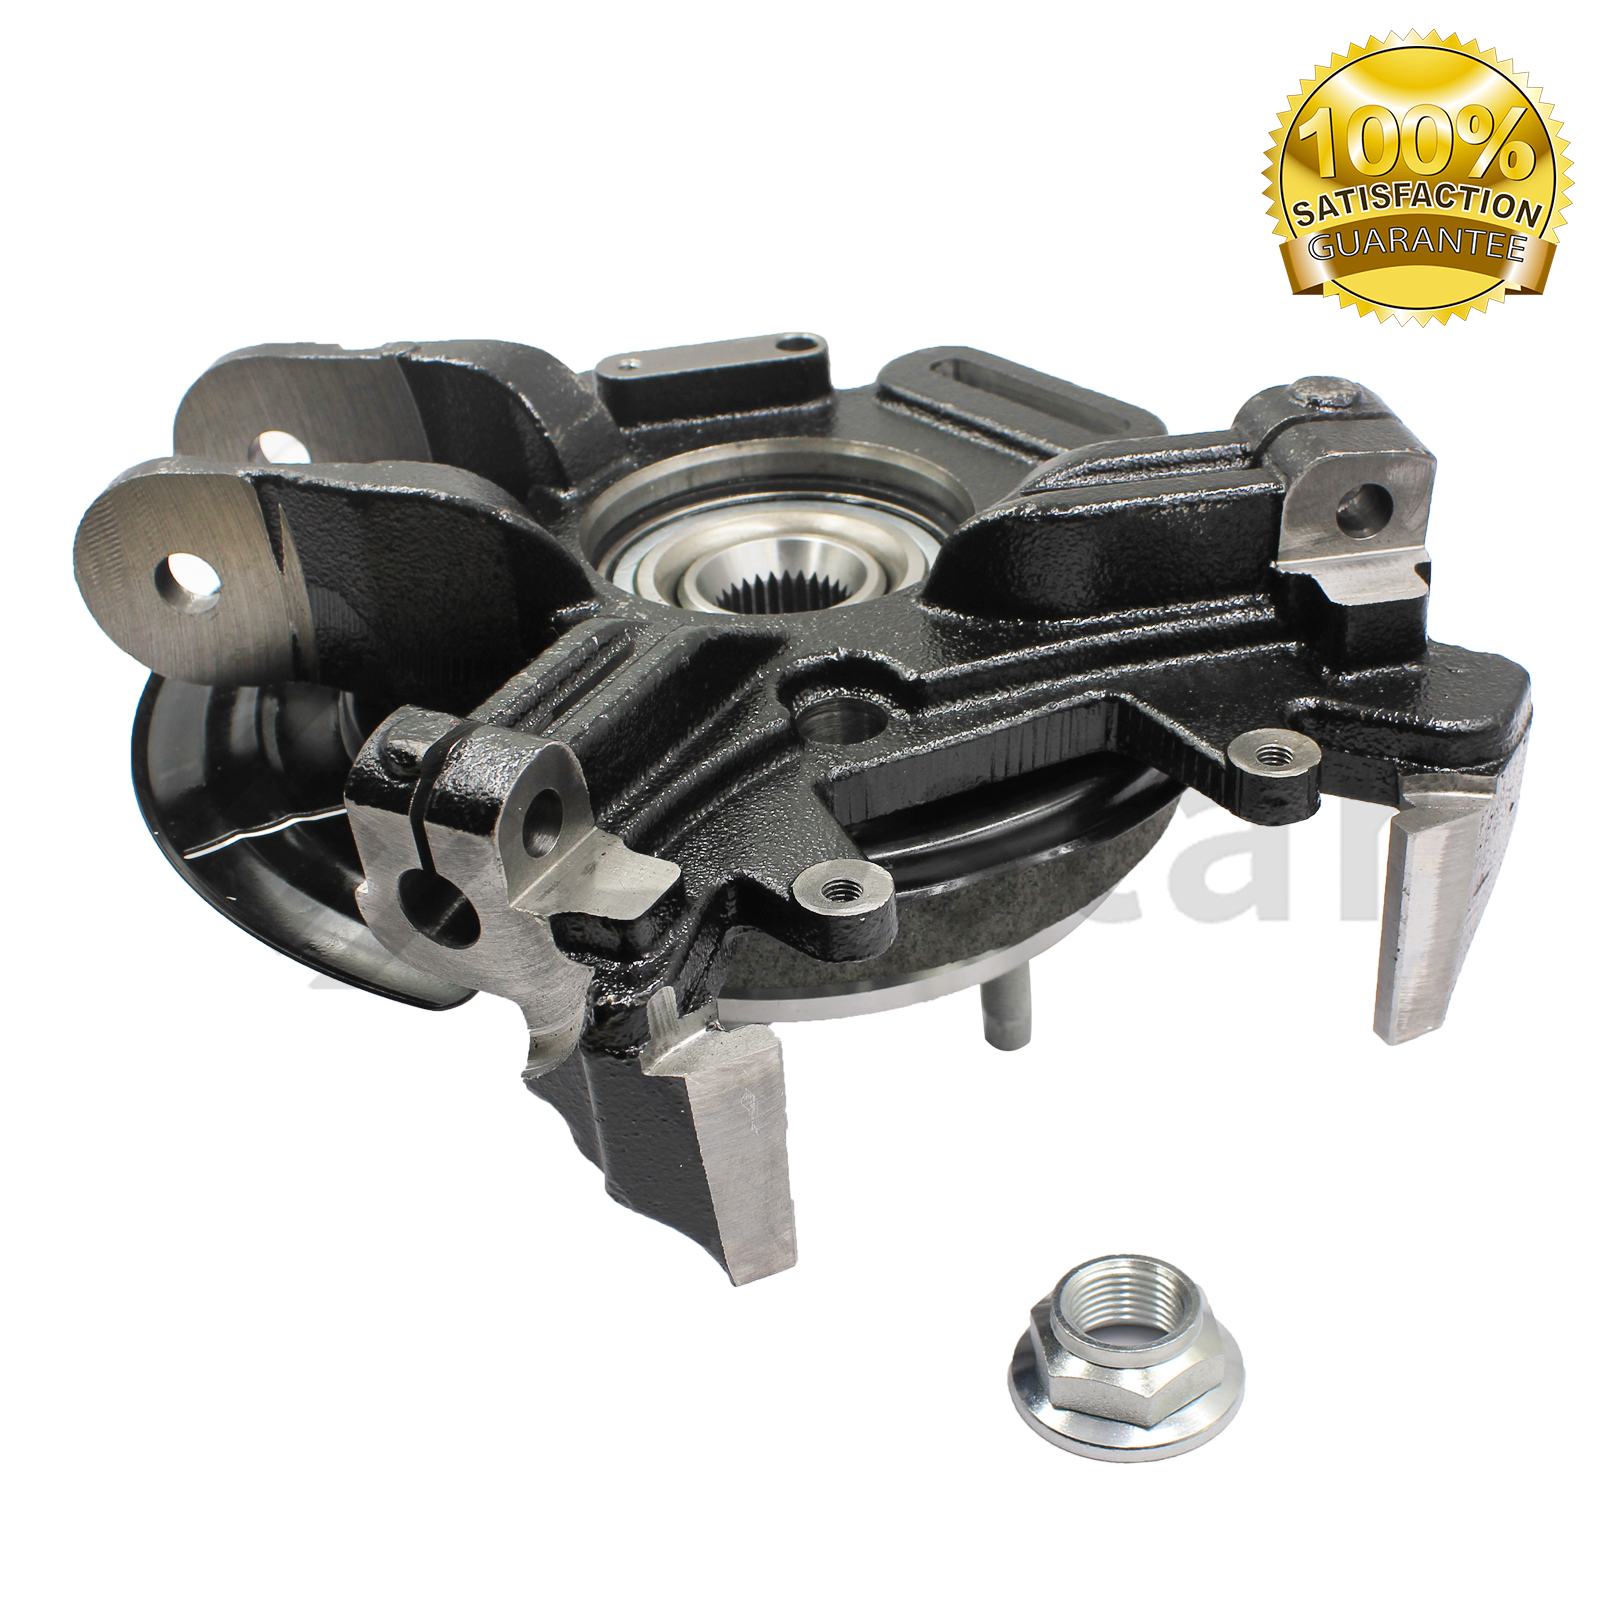 Rear Left Driver Side Steering Knuckle Compatible with 2002-2005 Ford Explorer Mercury Mountaineer